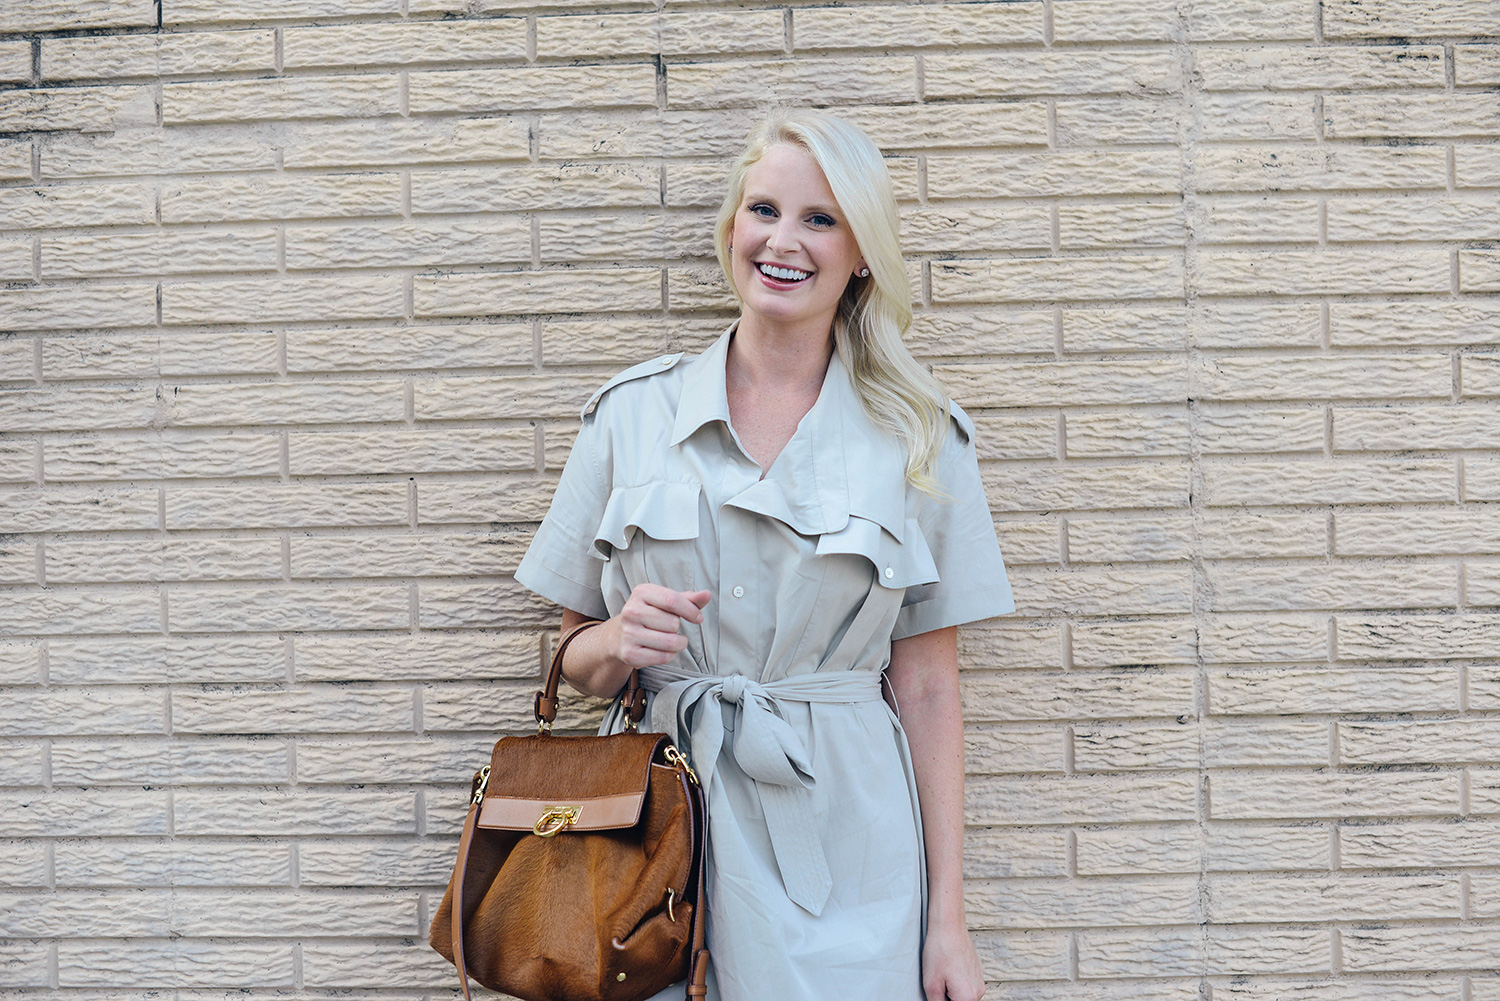 Burberry Ruffle Shirtdress | The Style Scribe